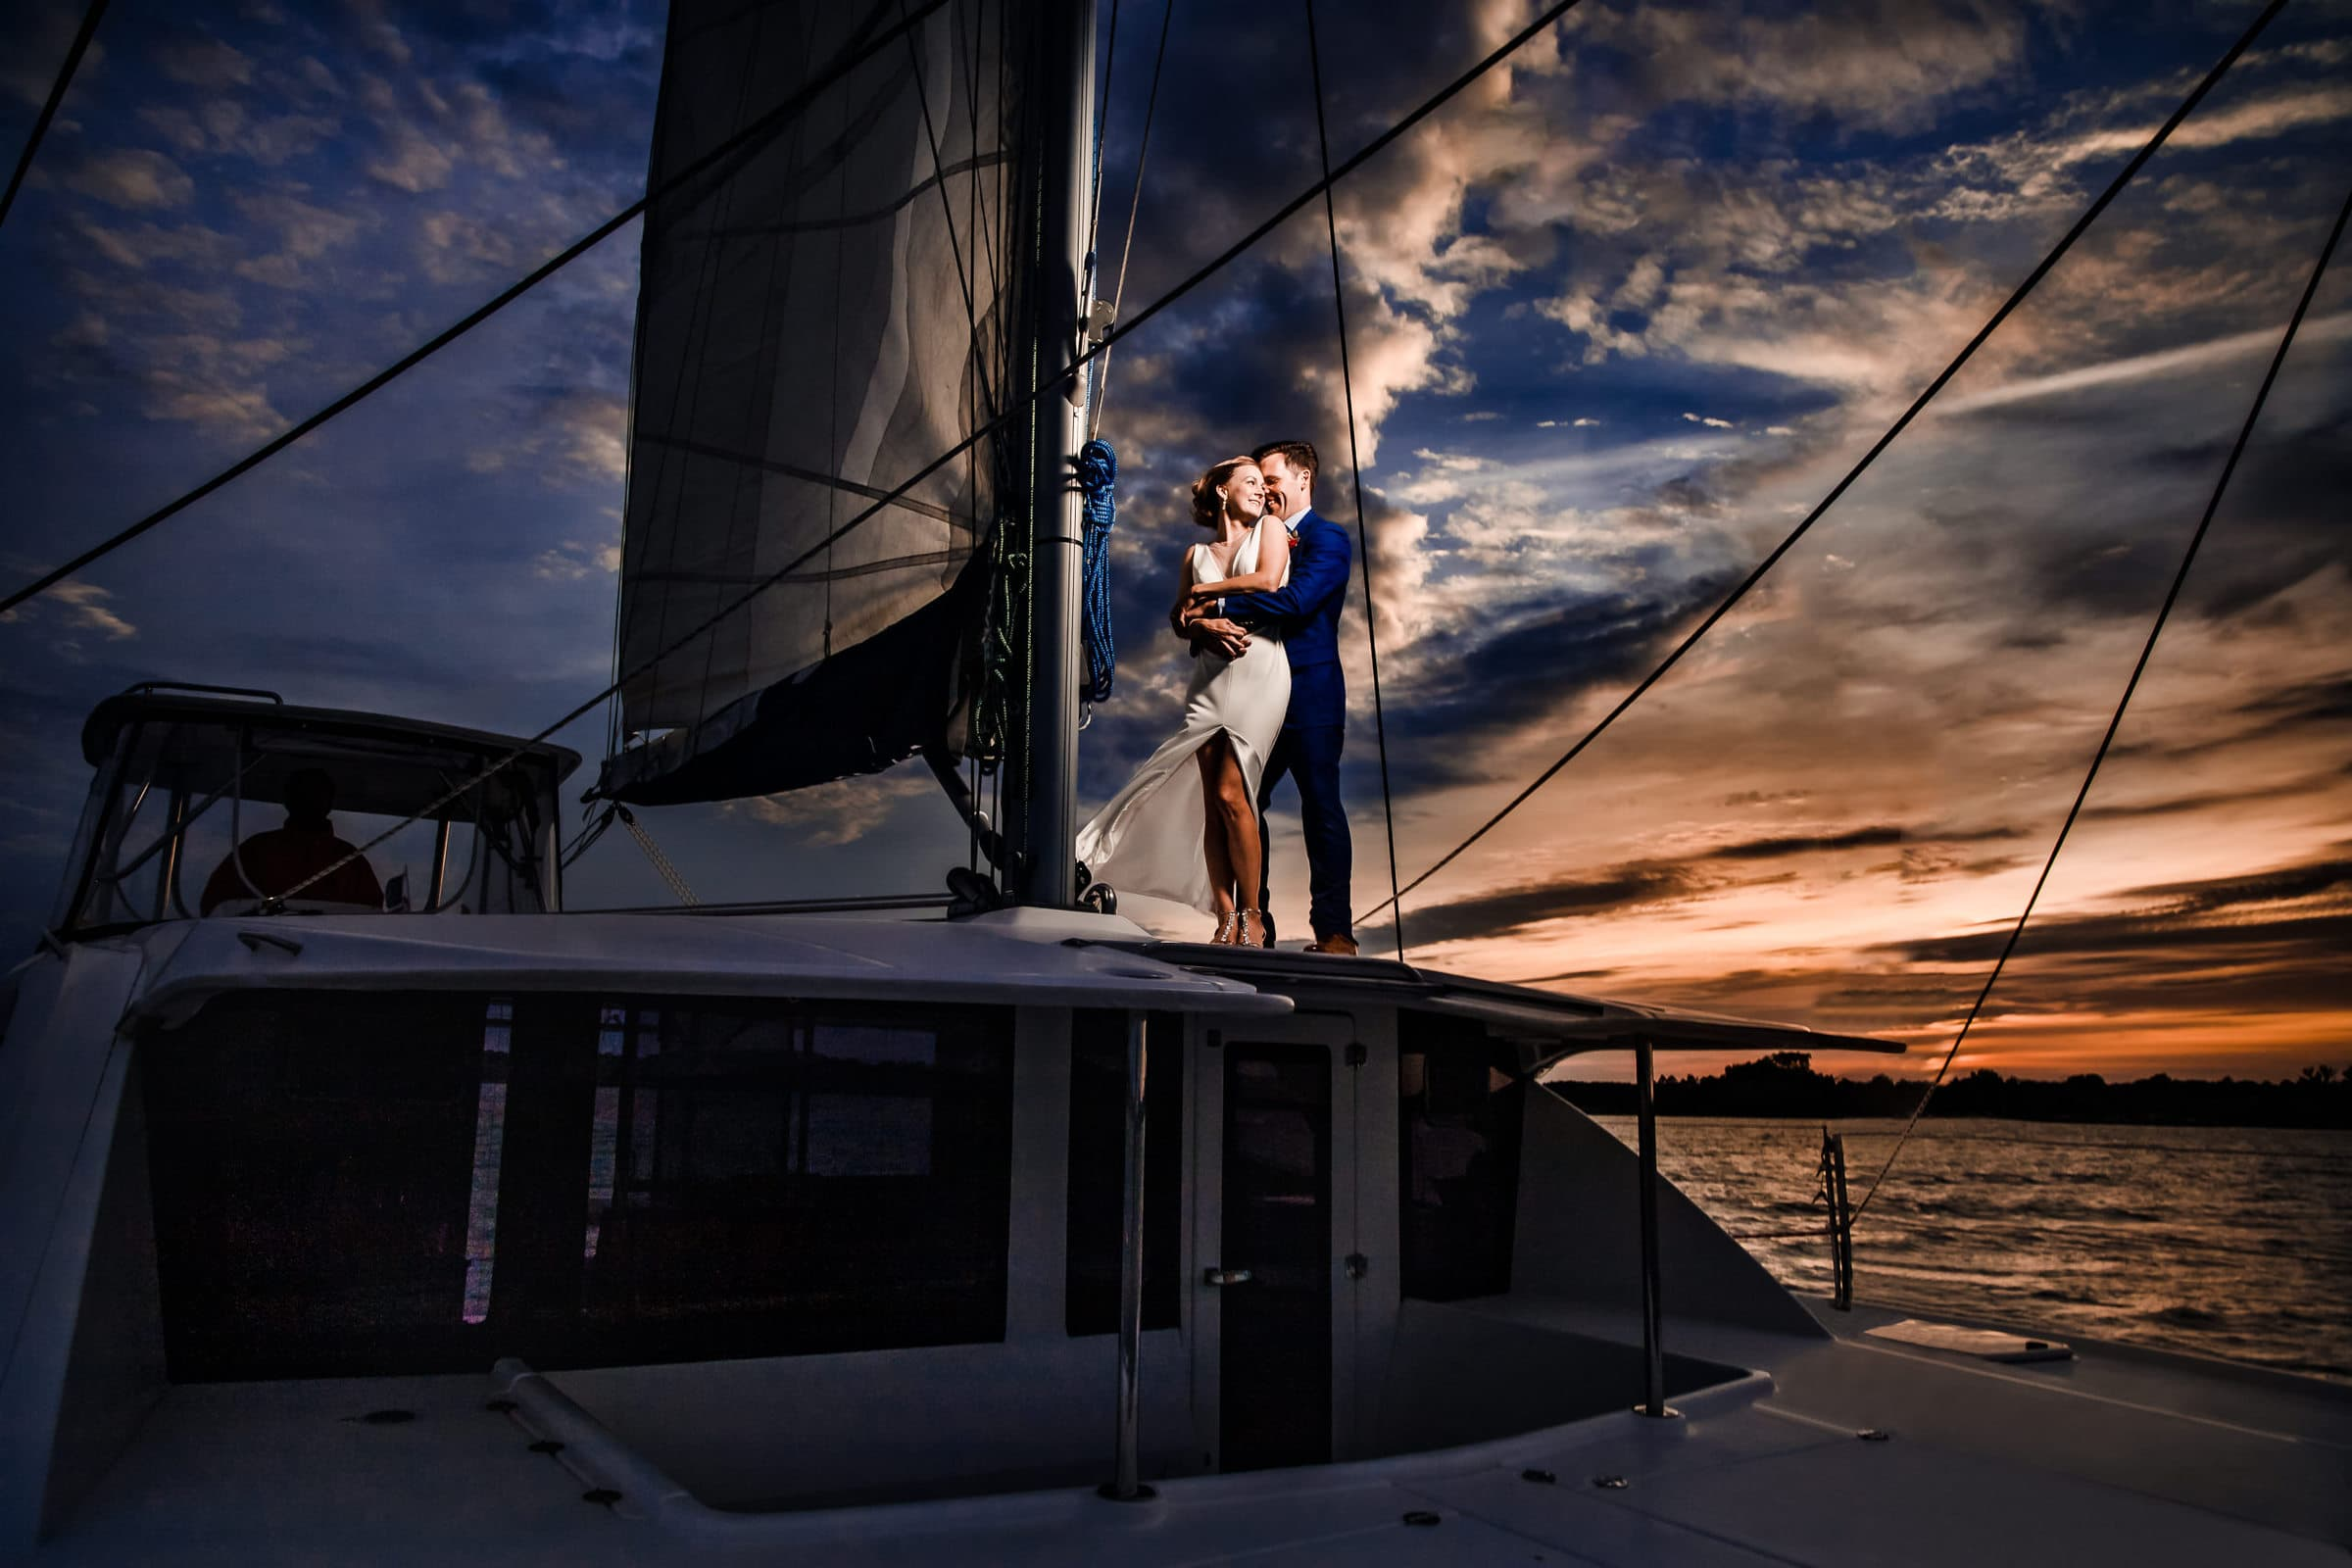 Gorgeous sunset on a catamaran for this wedding couple on the Chesapeake Bay in Maryland